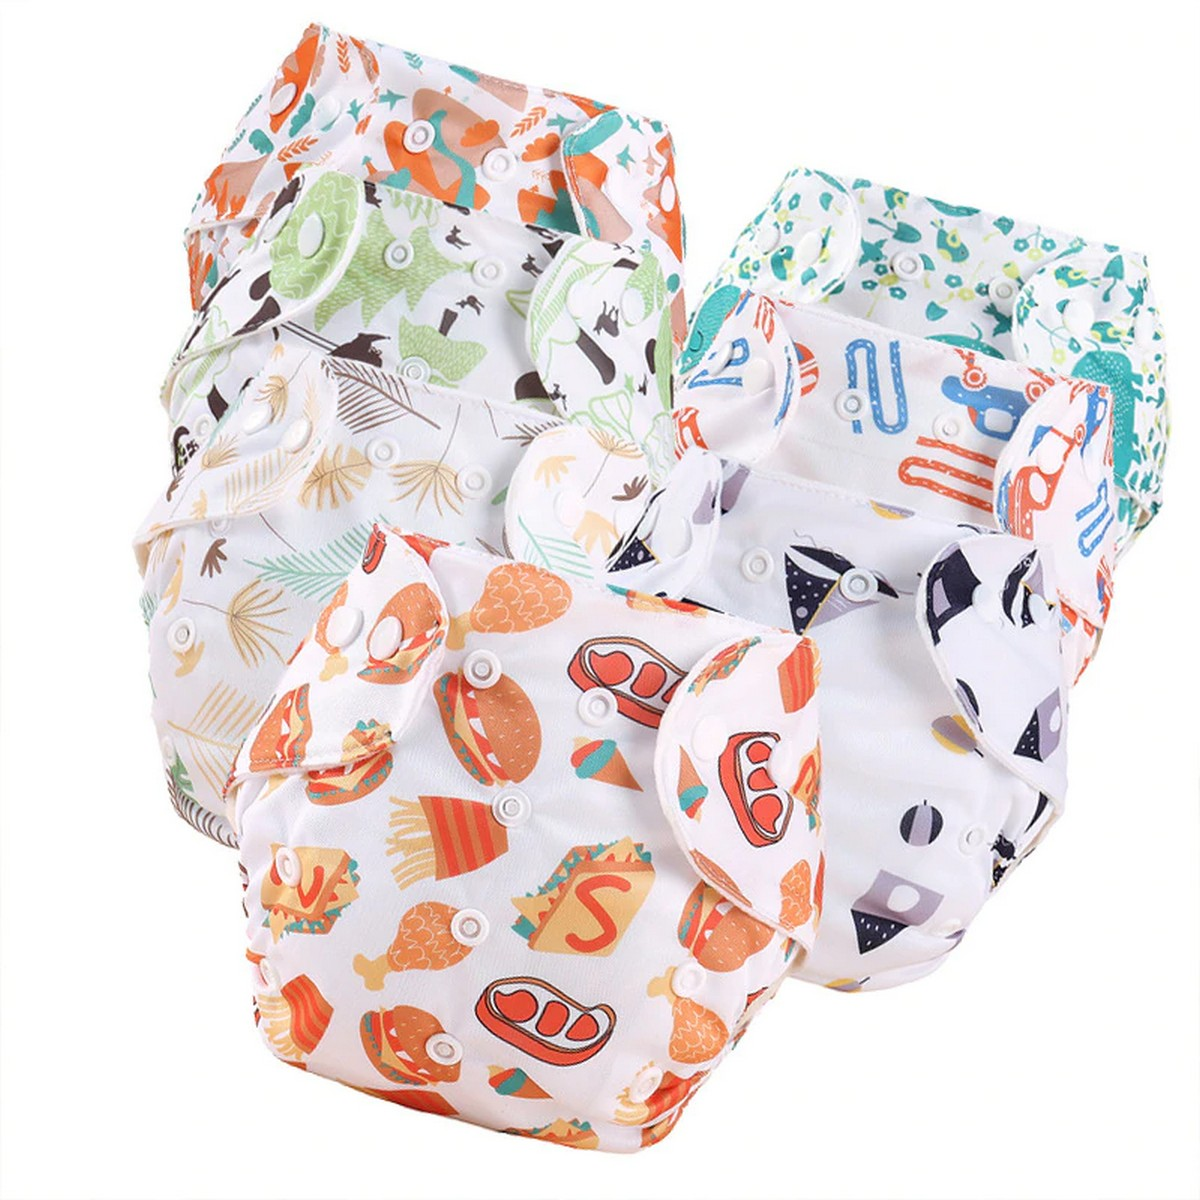 High Quality Imported 1Pcs Baby Adjustable Reusable Cloth Diaper Nappies Washable Nappy Newborn Cloth Diaper Children Eco-friendly Adjustable Training Pants Diaper Cover Fit for 0-2 Years Infants Toddlers